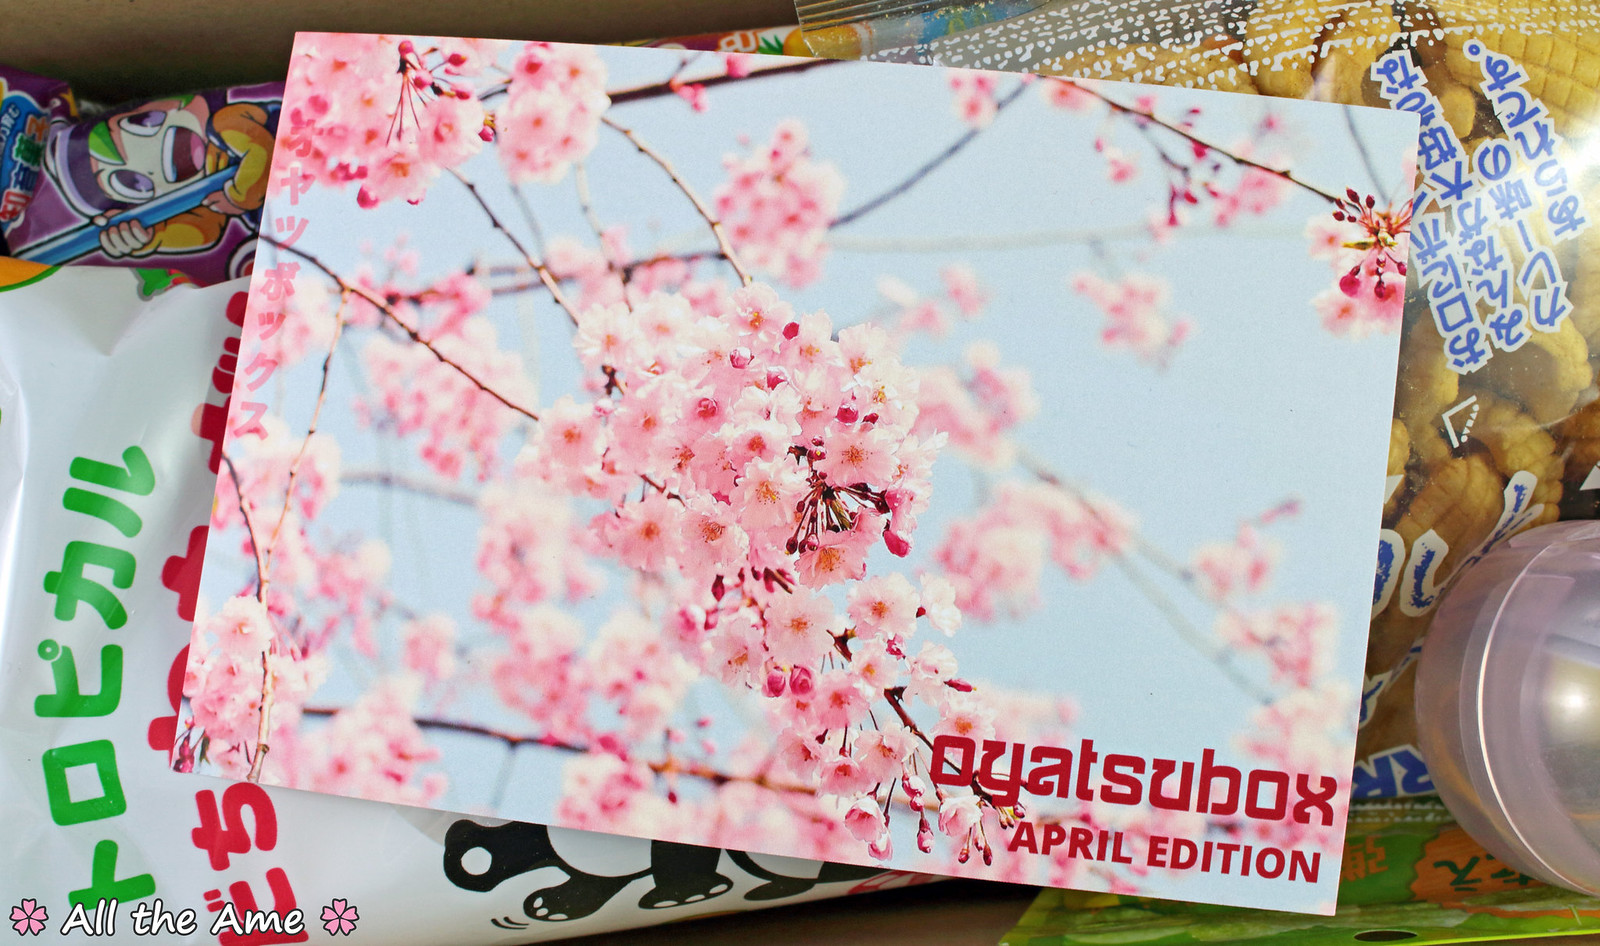 OyatsuBox April 2017